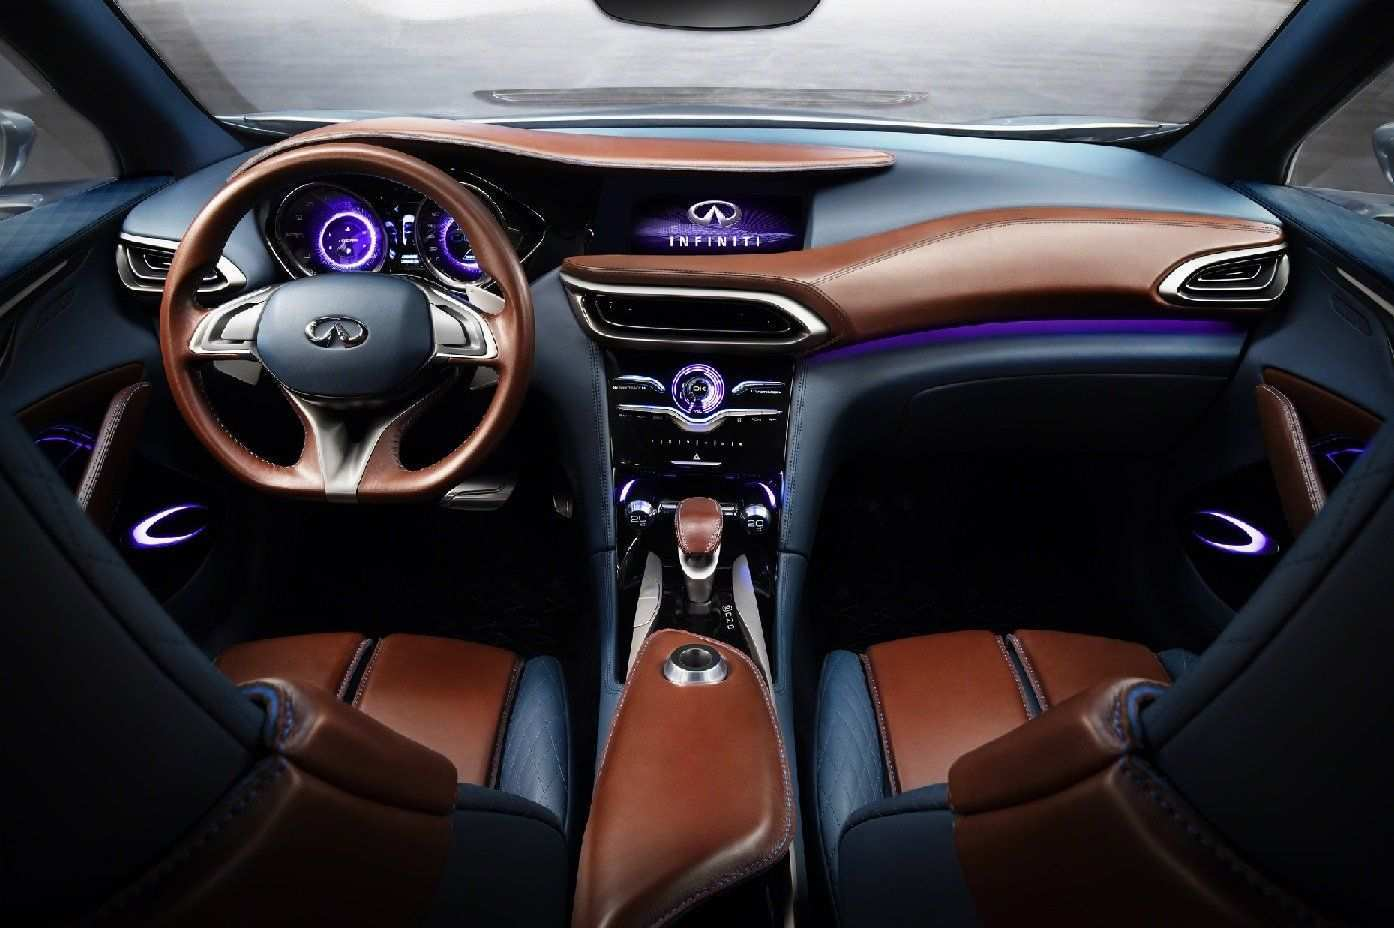 74 Best Review 2020 Infiniti QX70 Spy Shoot by 2020 Infiniti QX70